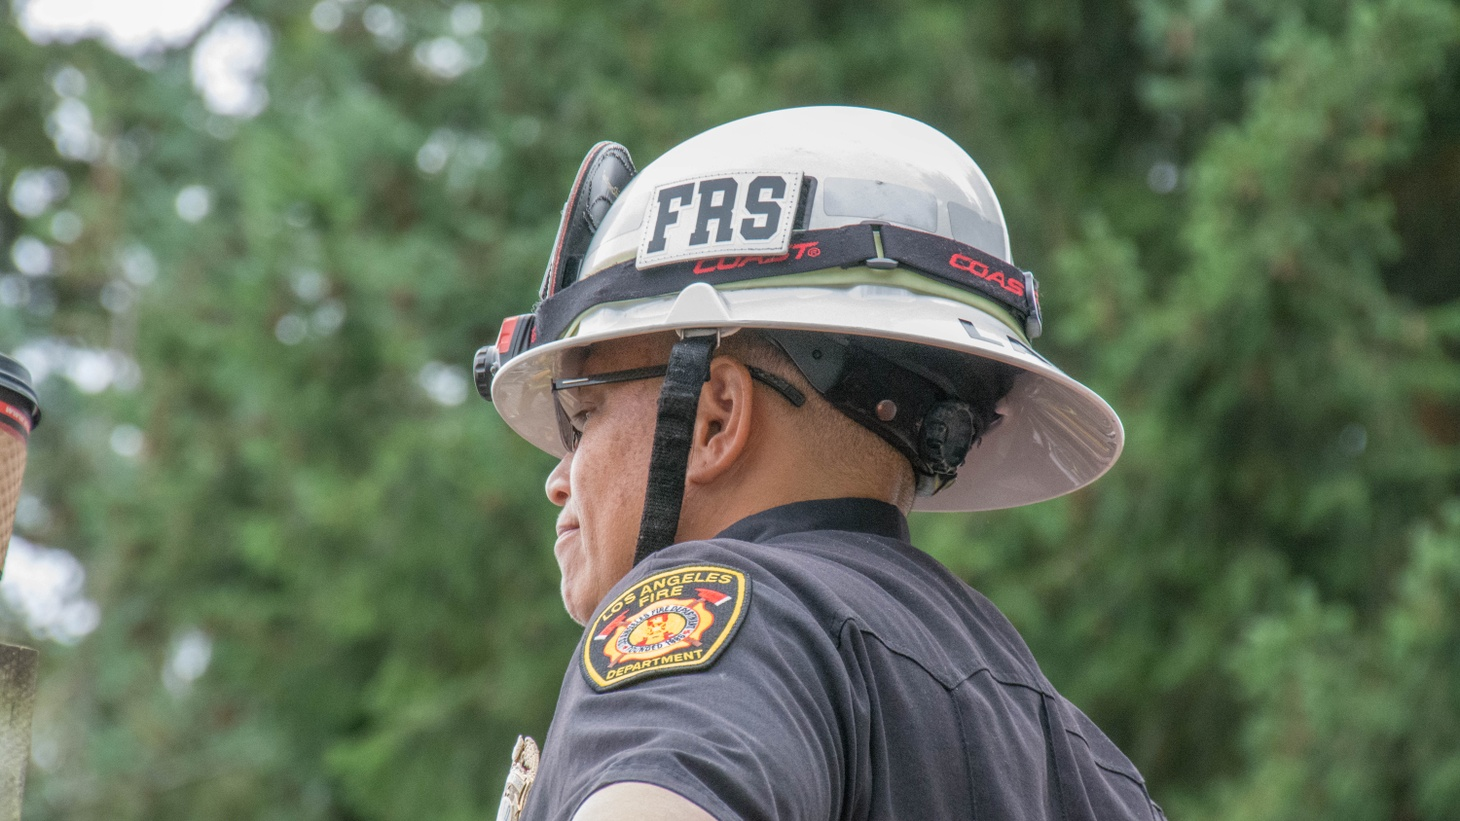 """""""When I was taking my battalion chief's exam, I had one of the other test takers, male, question why I was there,"""" says Kris Larson. """"In an open forum, he felt just fine making that comment."""""""